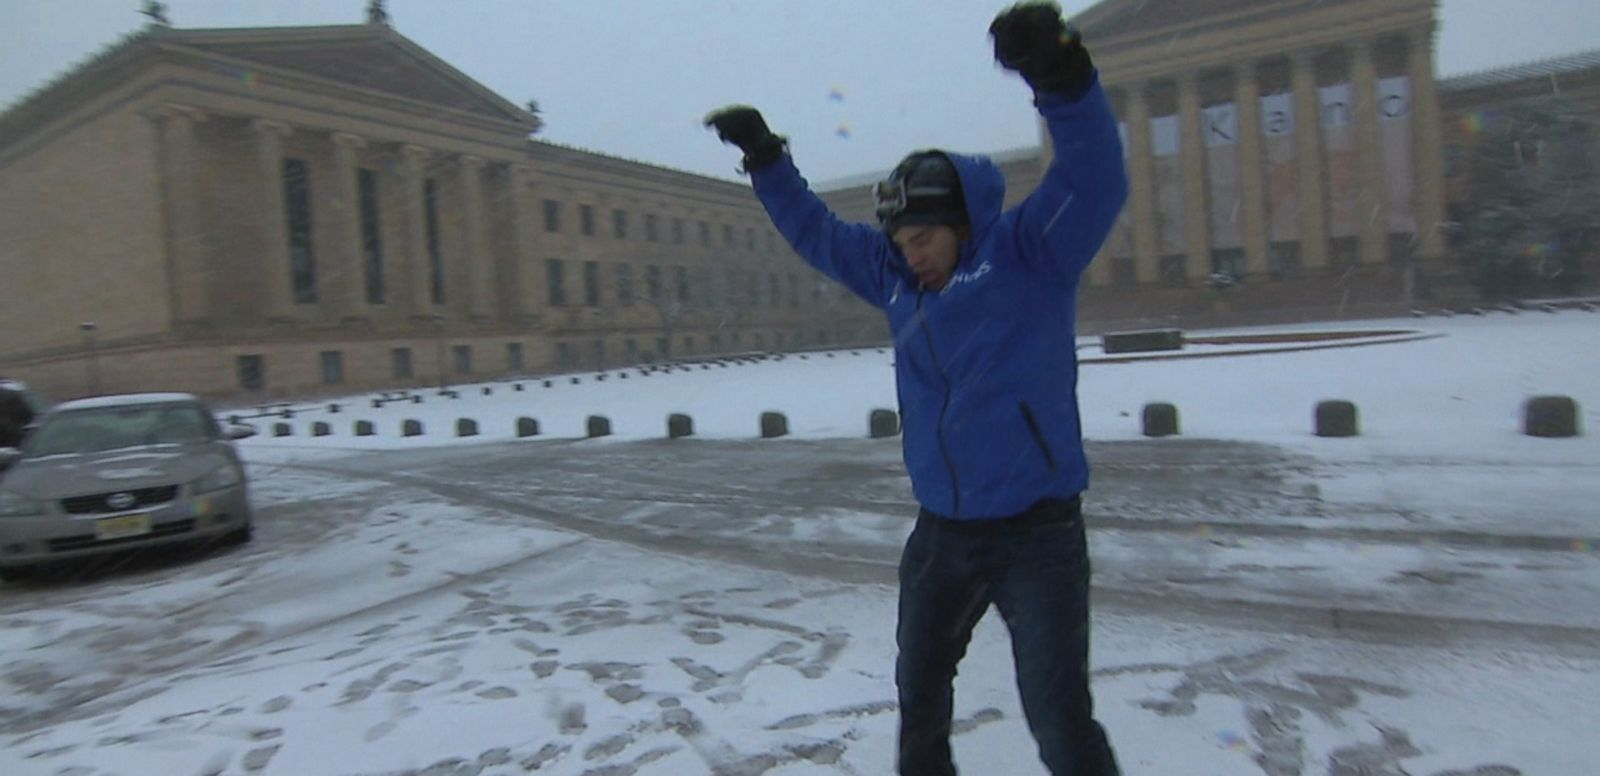 VIDEO: ABC News' Rob Marciano takes to the roads and steps of a snow-blanketed Philadelphia.